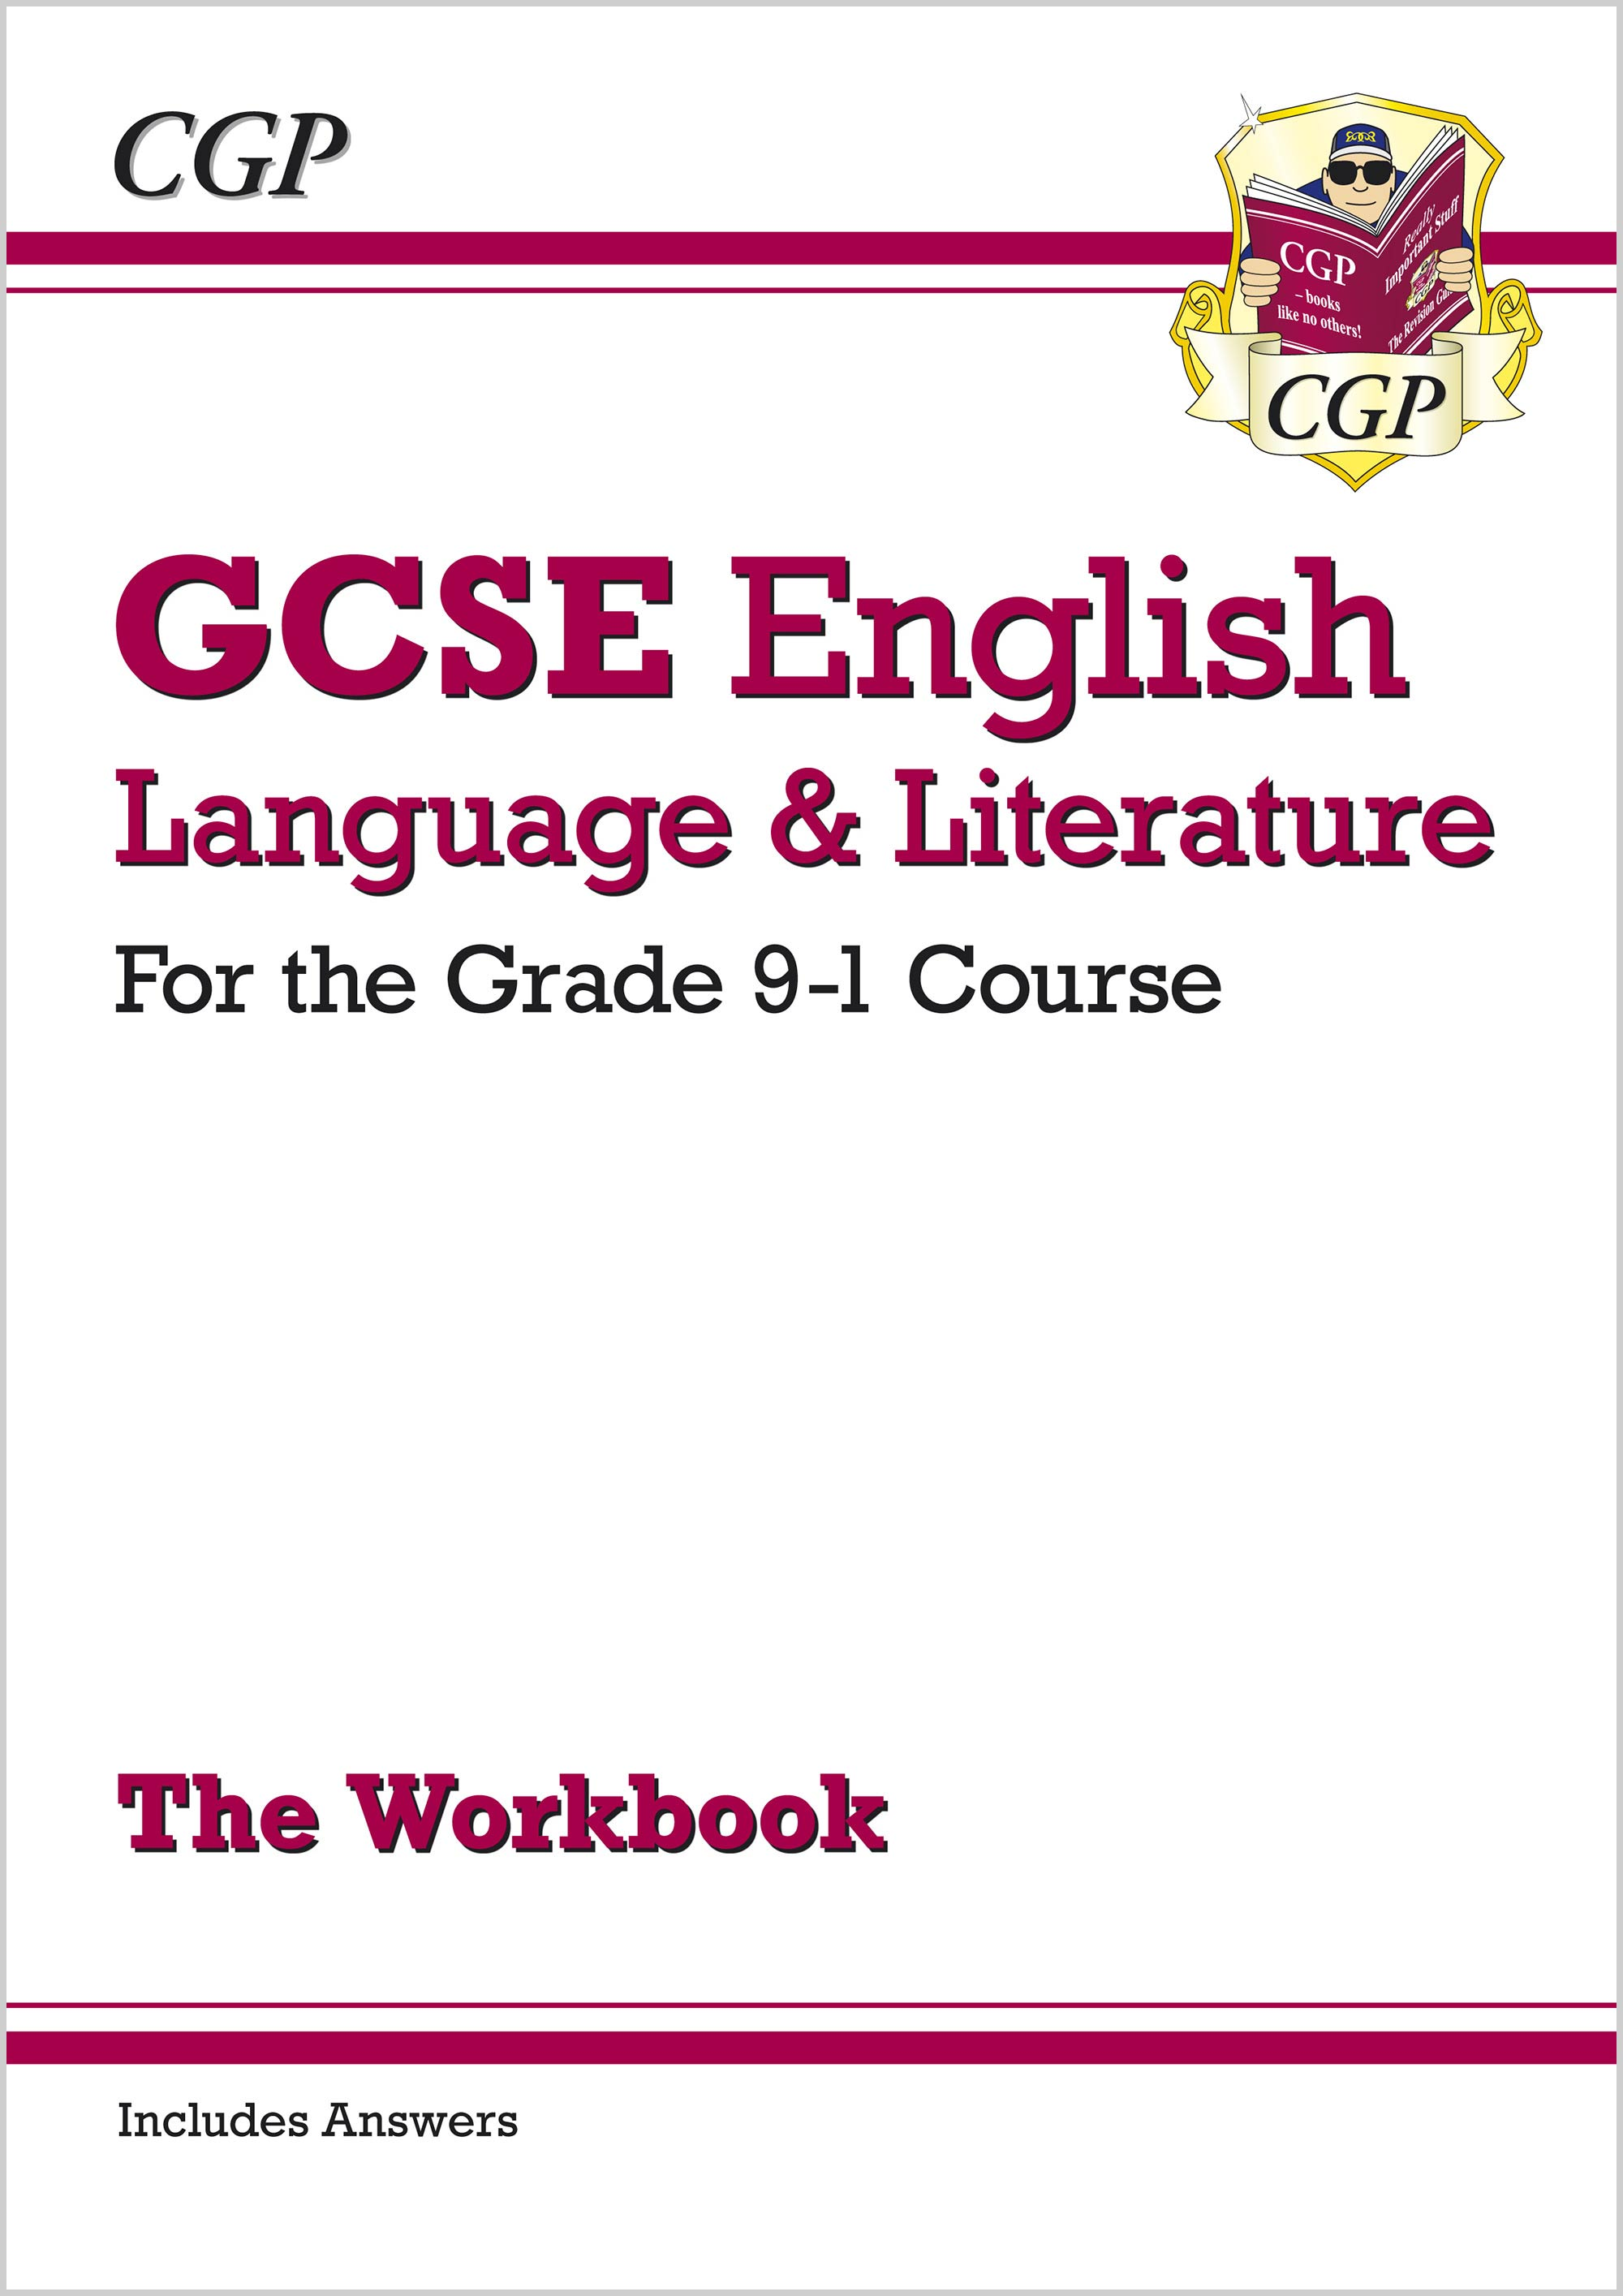 EHW41 - GCSE English Language and Literature Workbook - for the Grade 9-1 Courses (includes Answers)